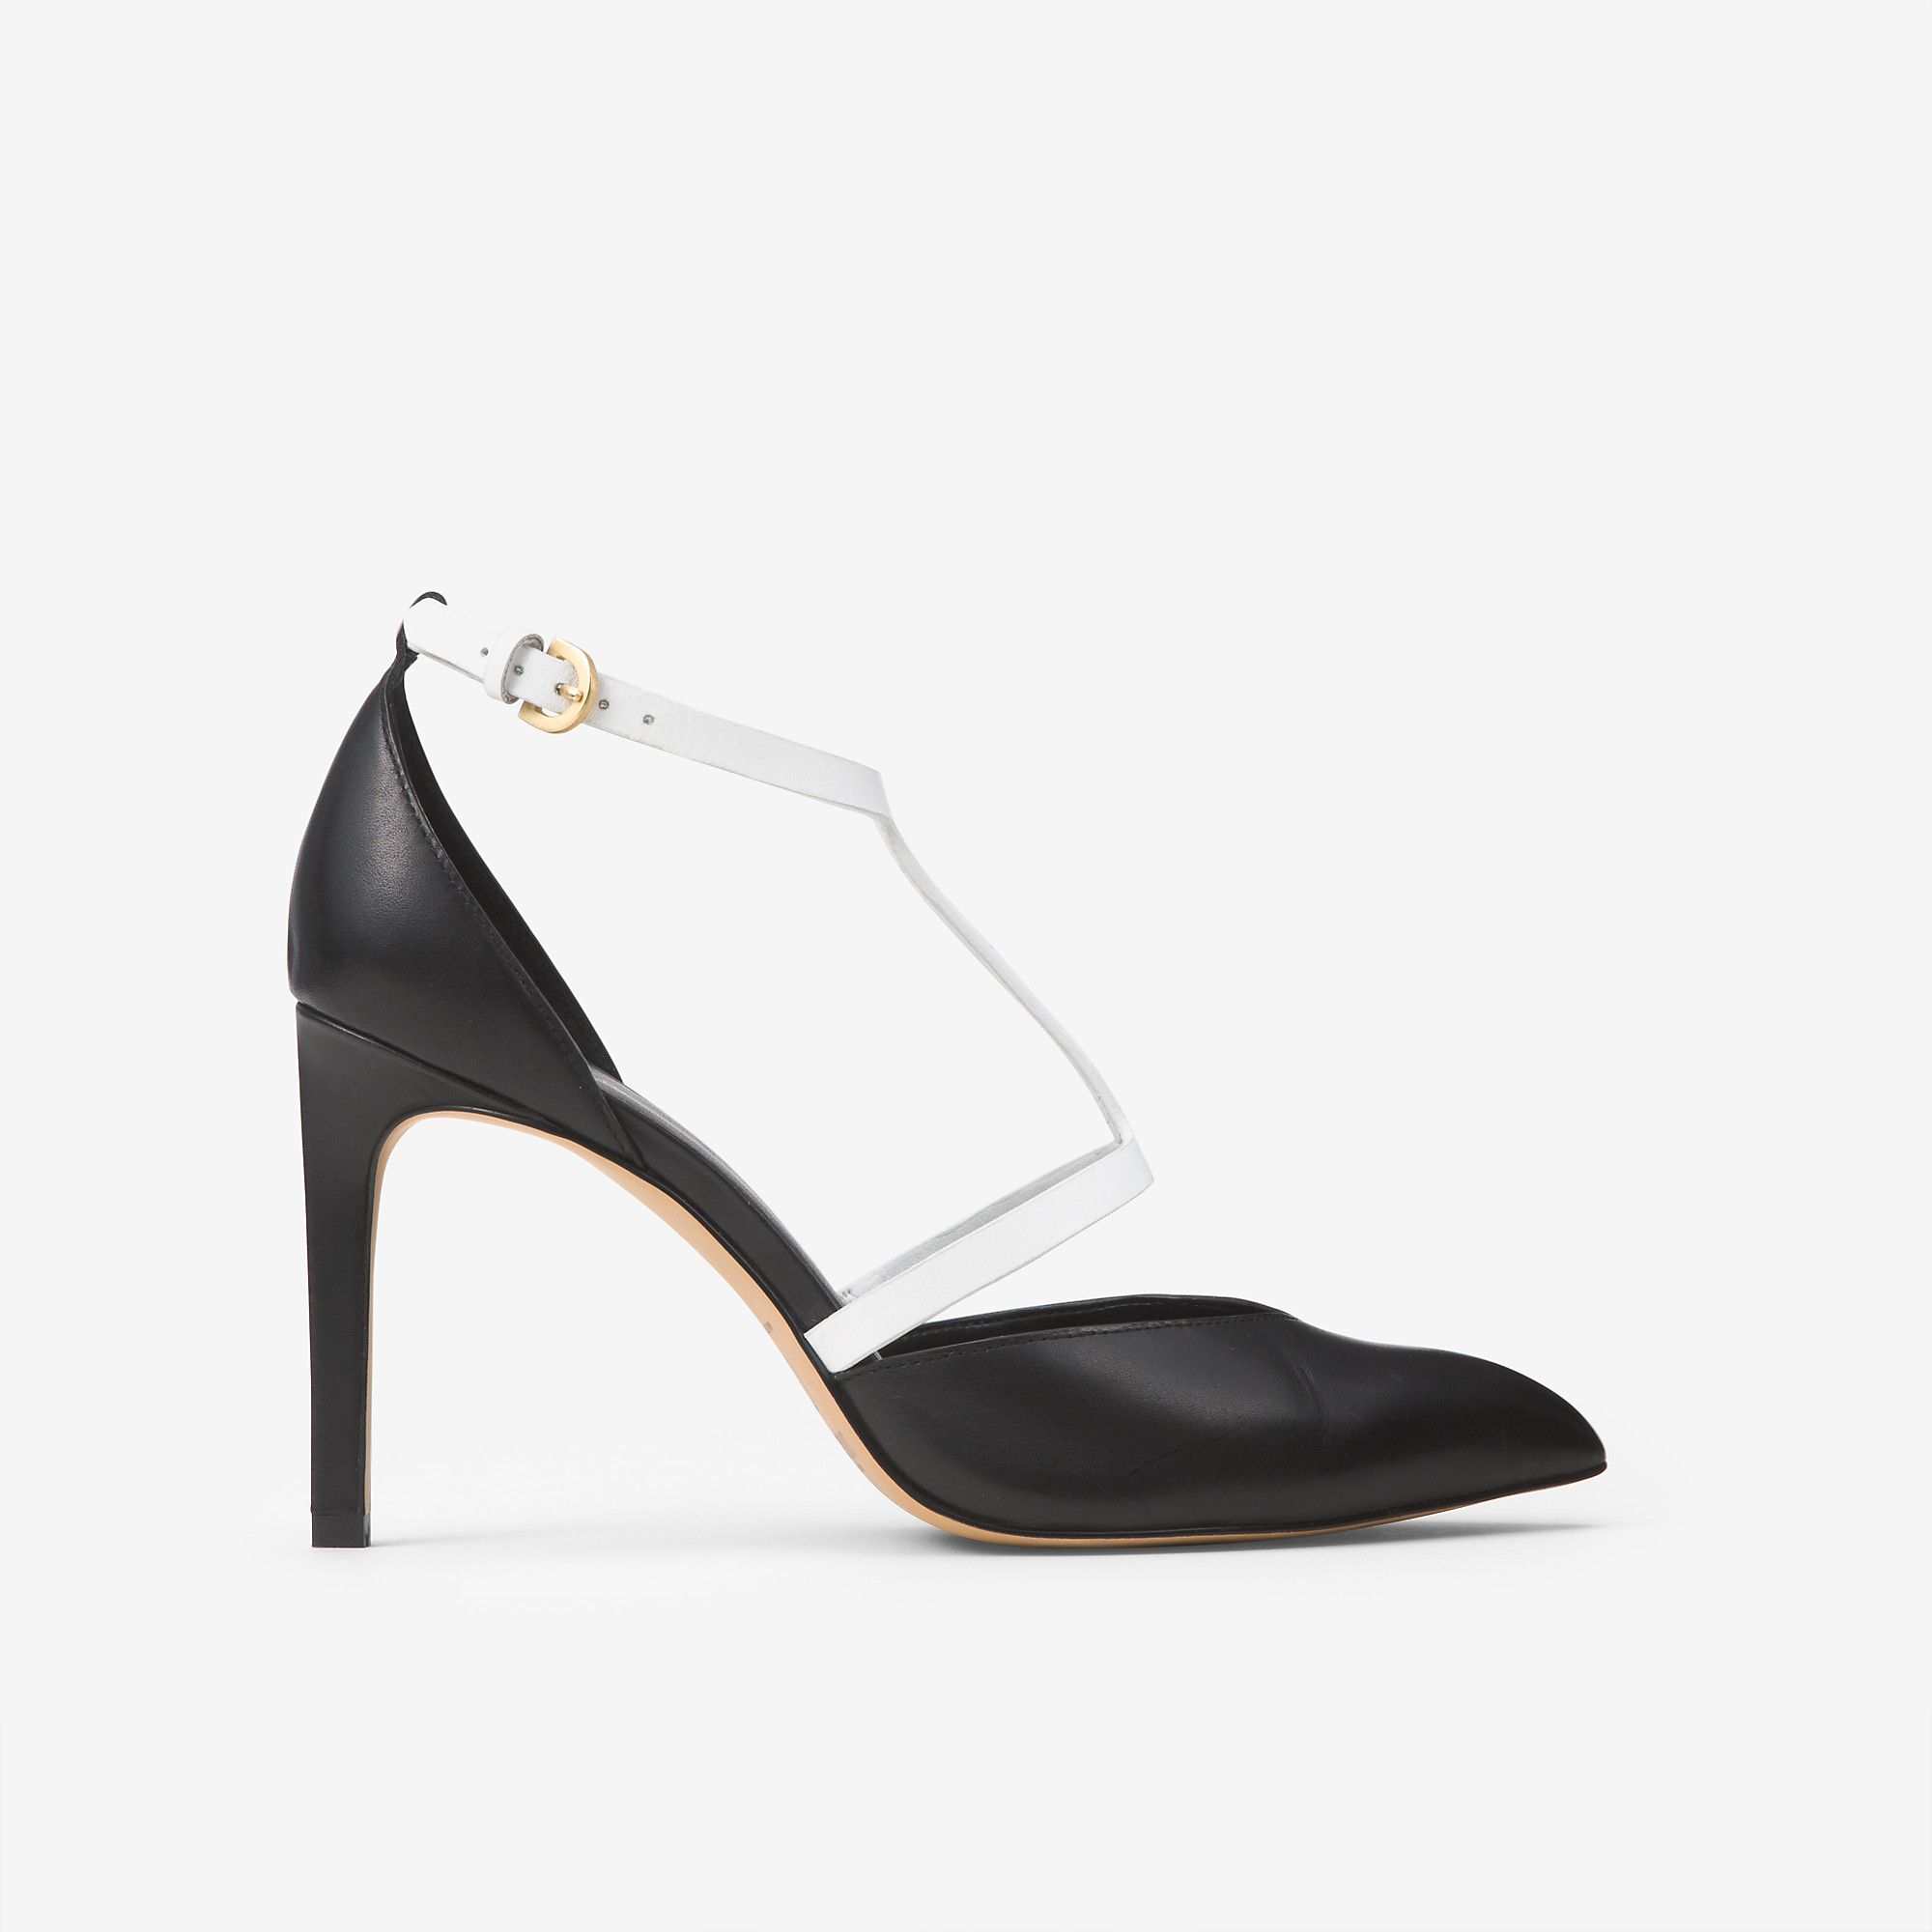 T-STRAP HEELS - Kate Spade Saturday